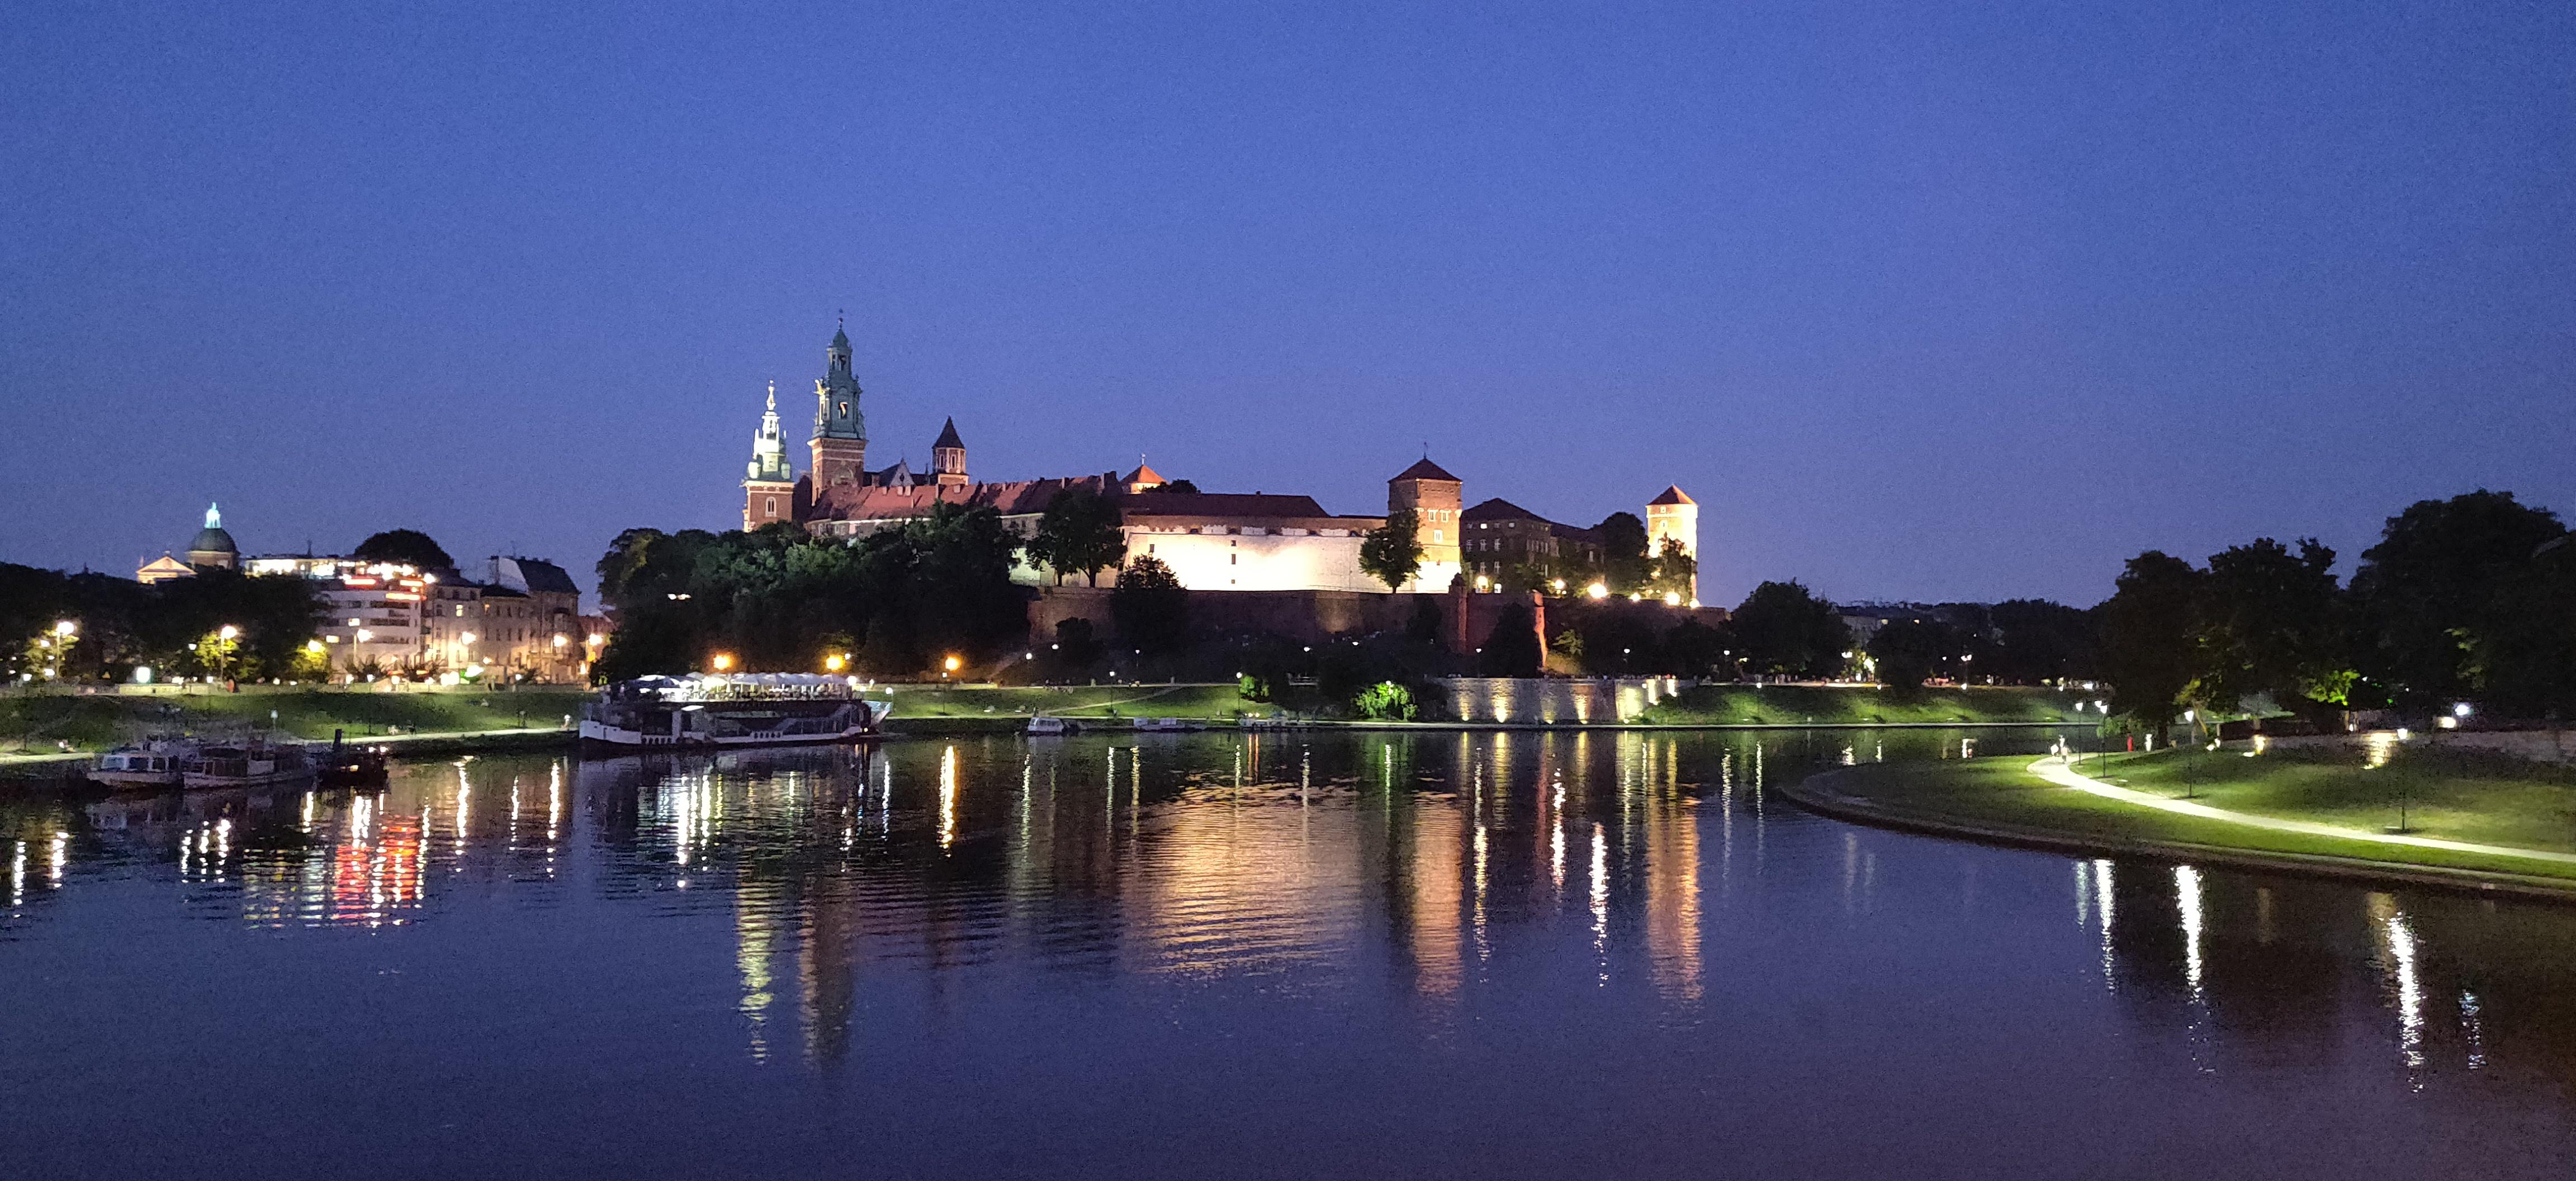 Wawel Royal Castle, seen from the Vistula river